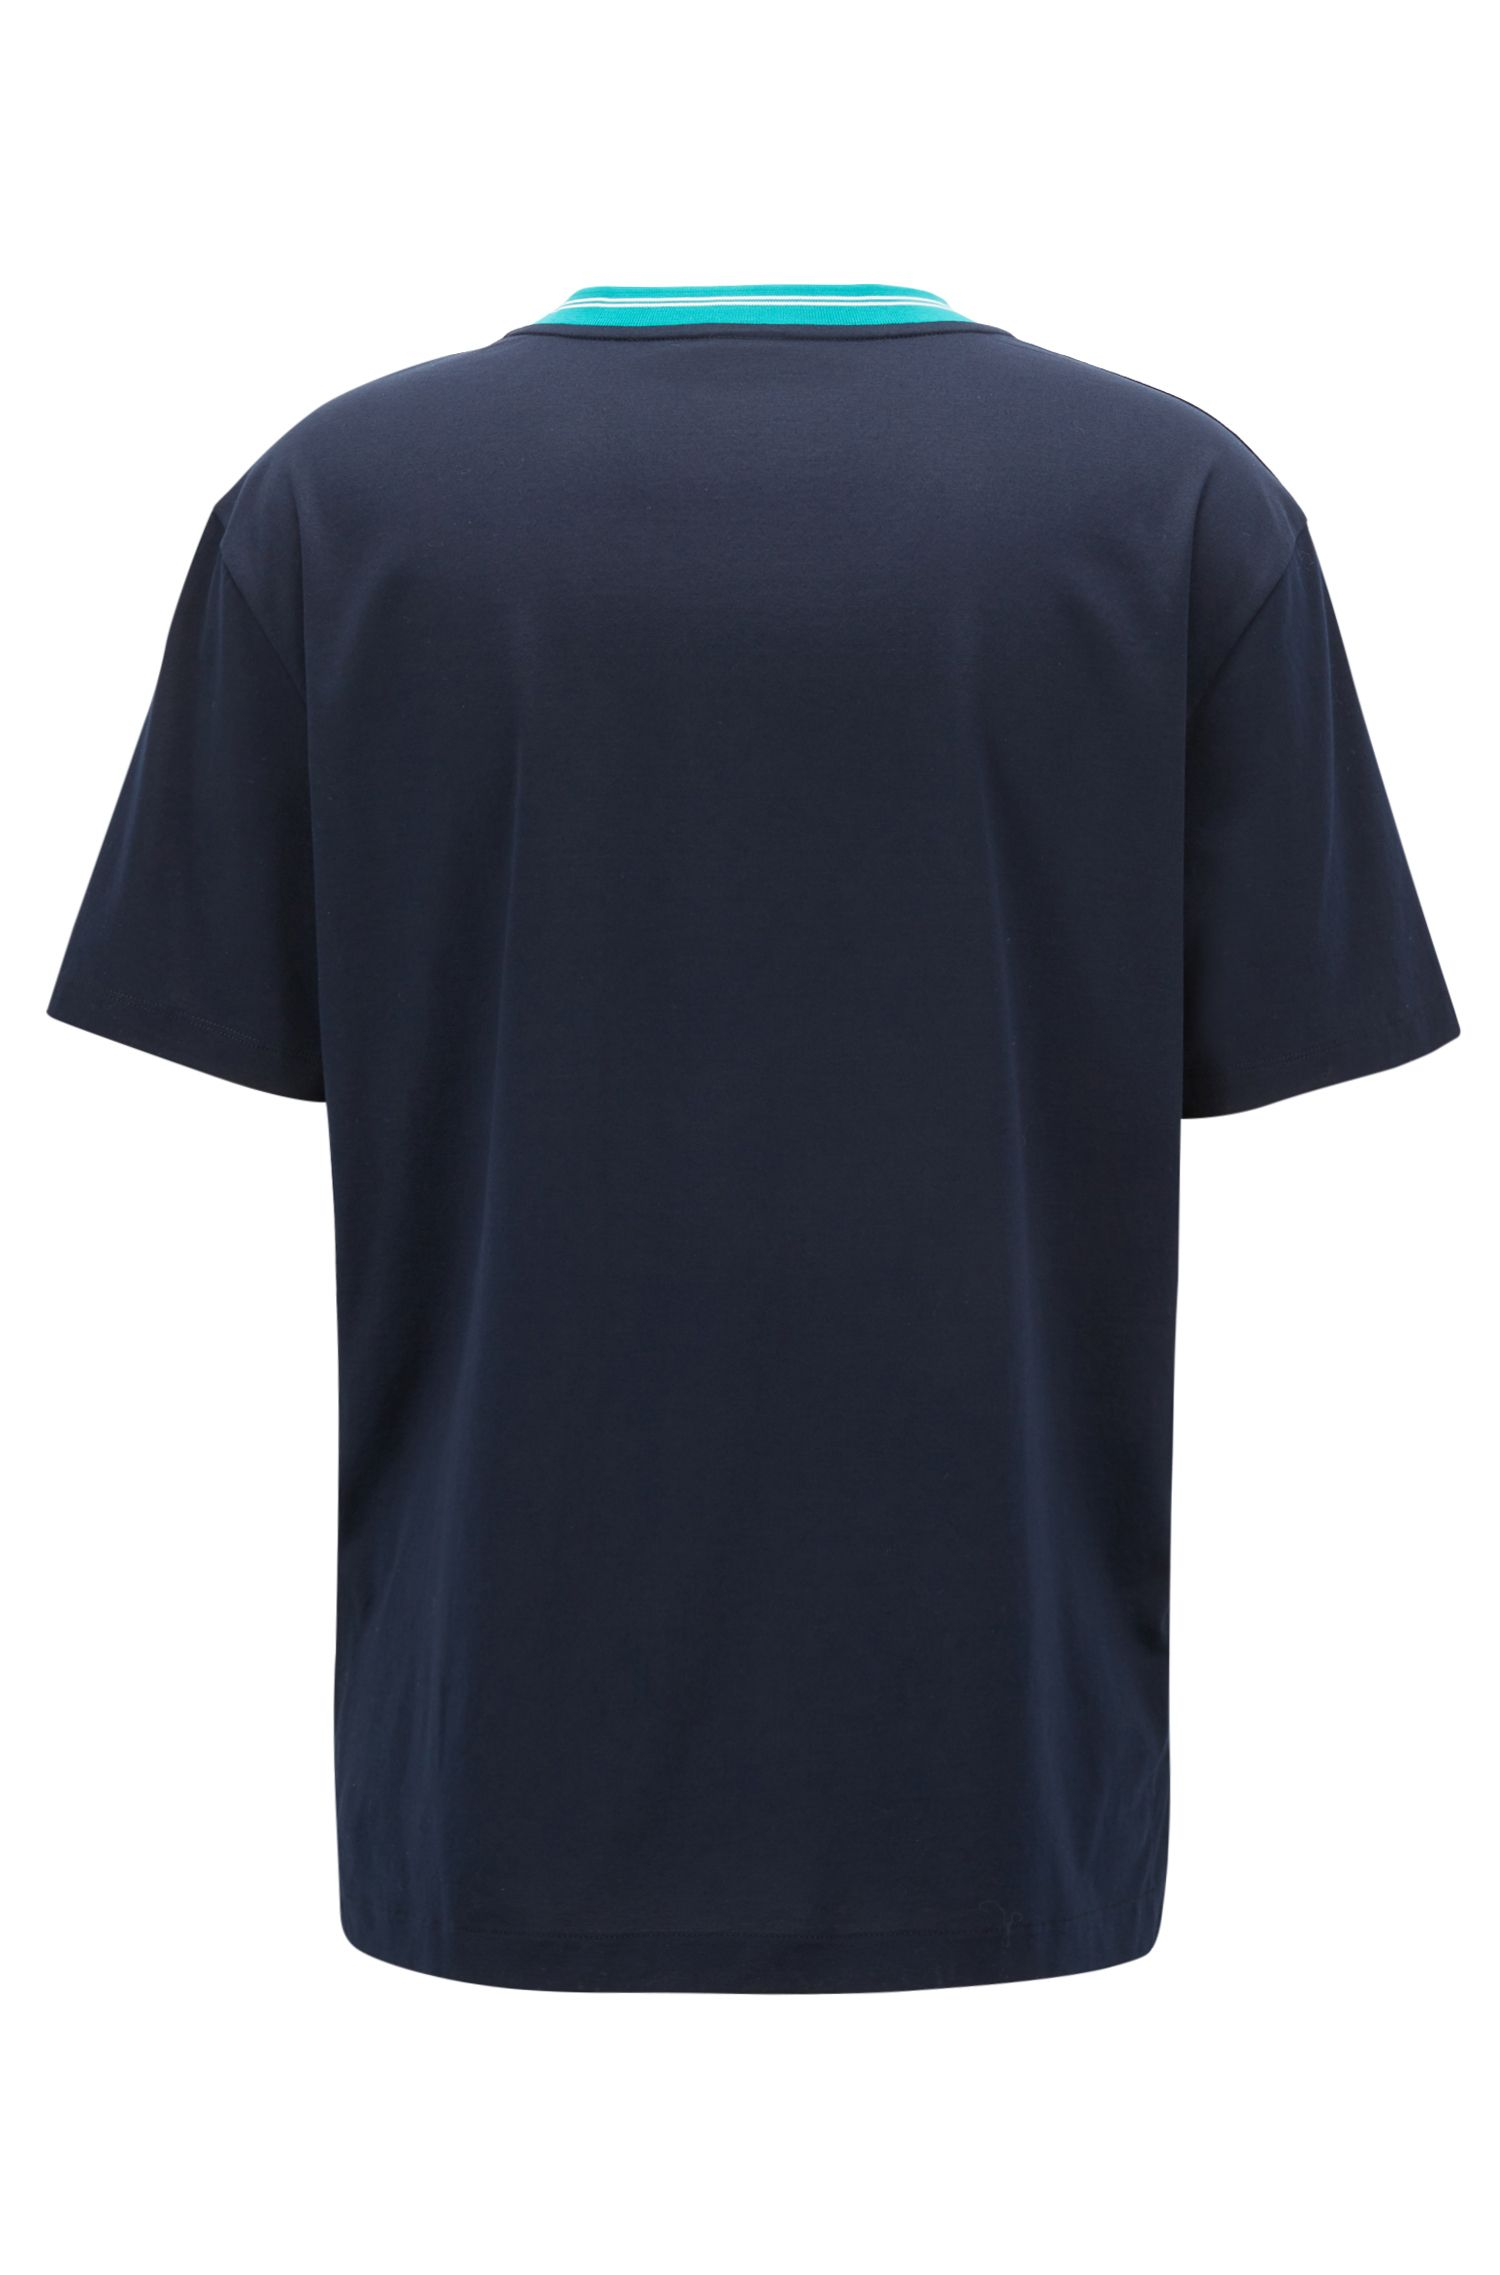 Hugo Boss - Mercerised-cotton T-shirt with contrast collar band - 3